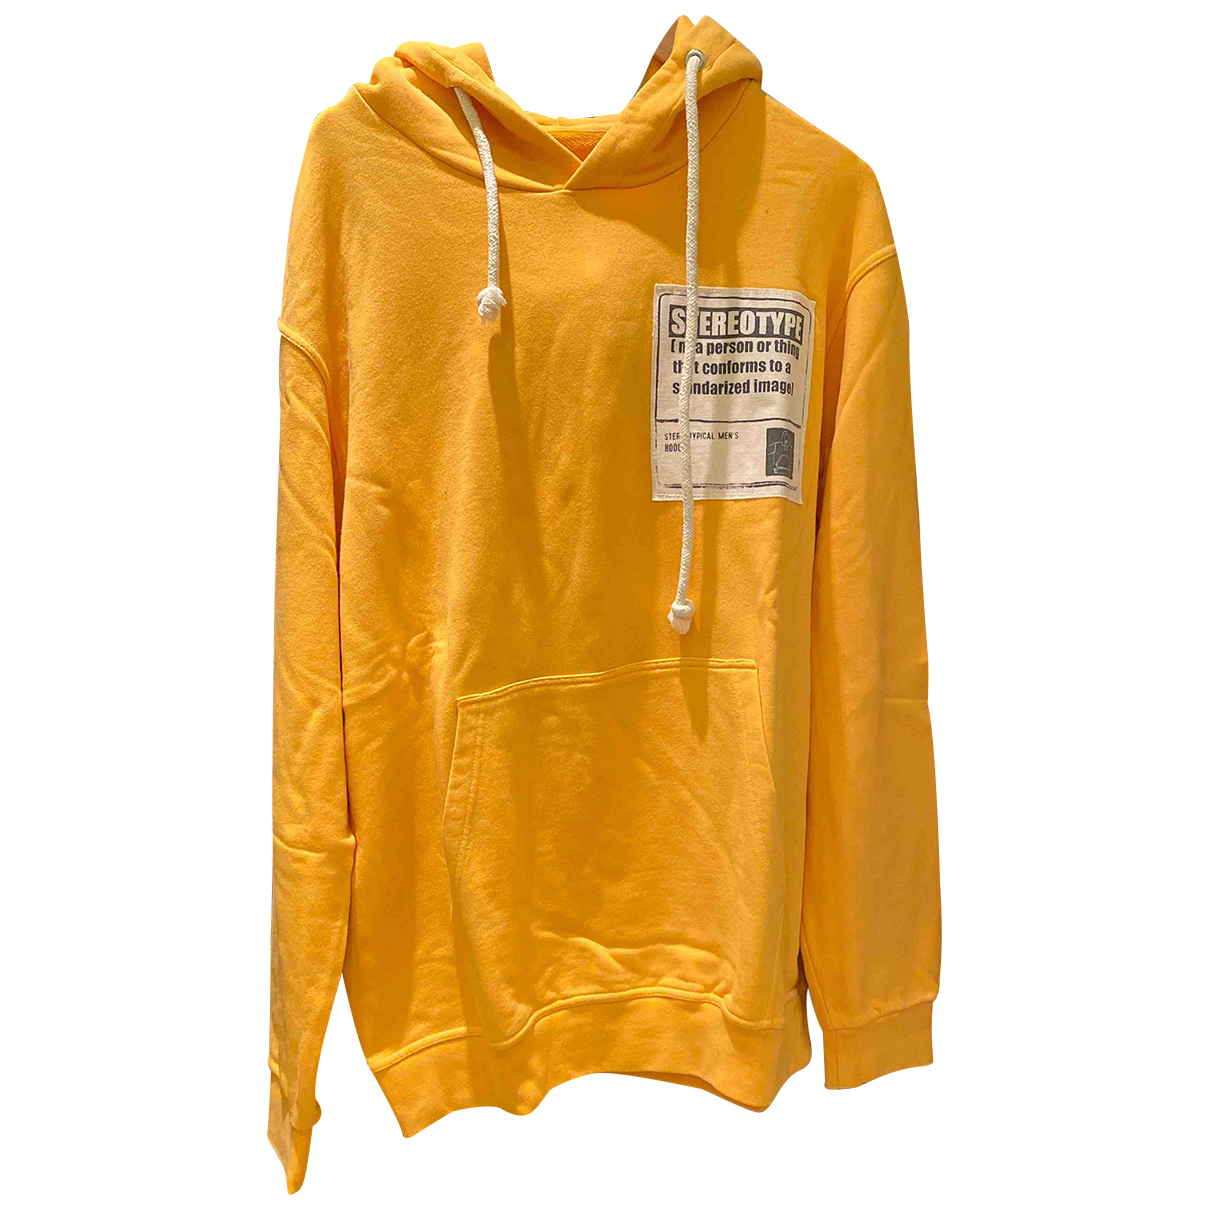 Maison Martin Margiela N Yellow Cotton Knitwear & Sweatshirts for Men 54 IT